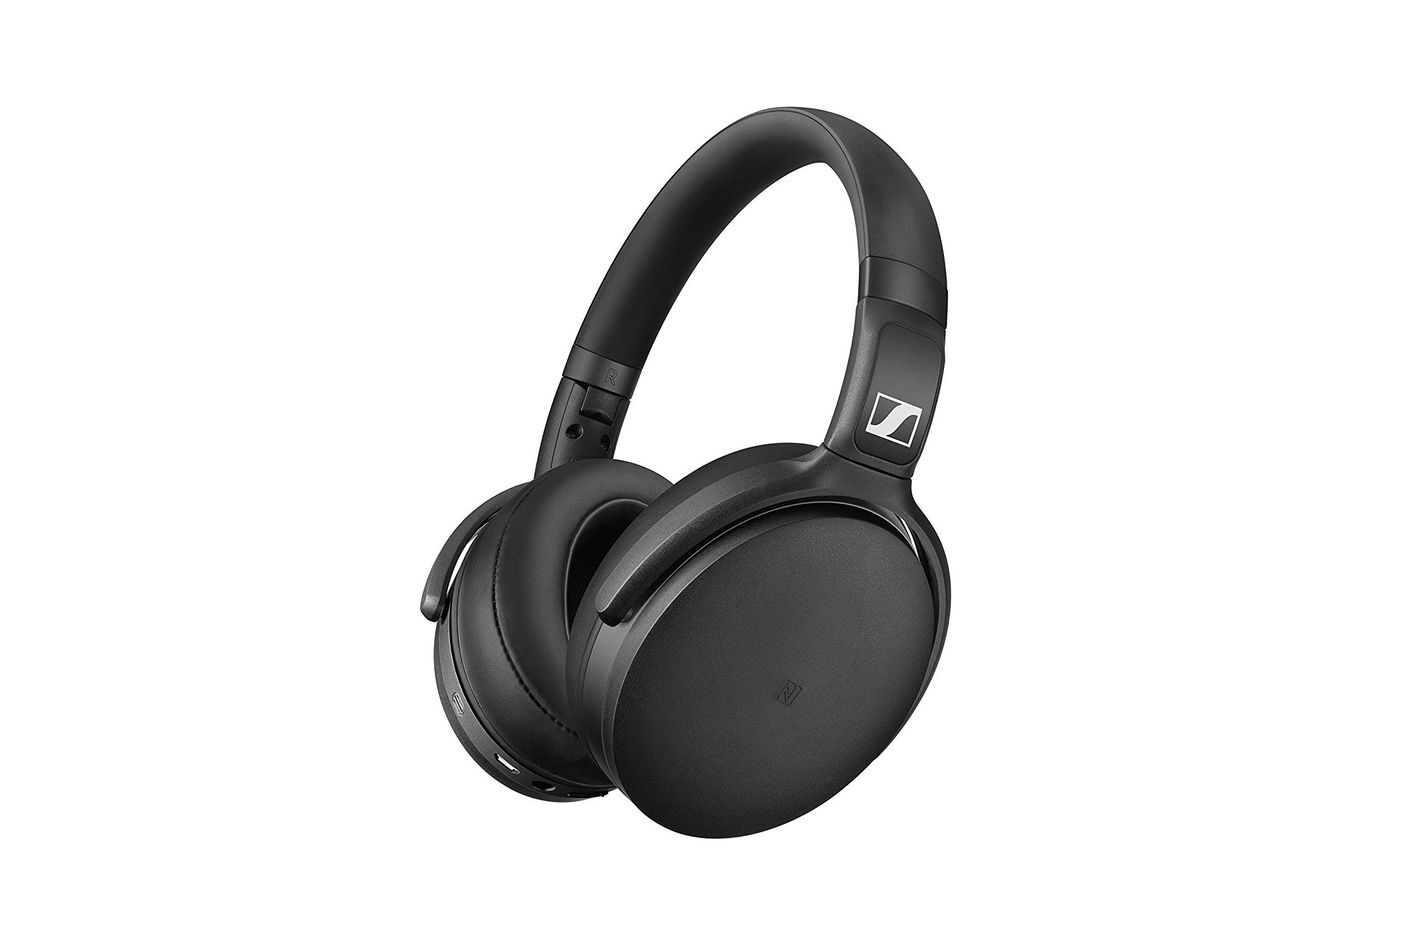 Sennheiser HD 4.50 SE Wireless Noise Canceling Headphones